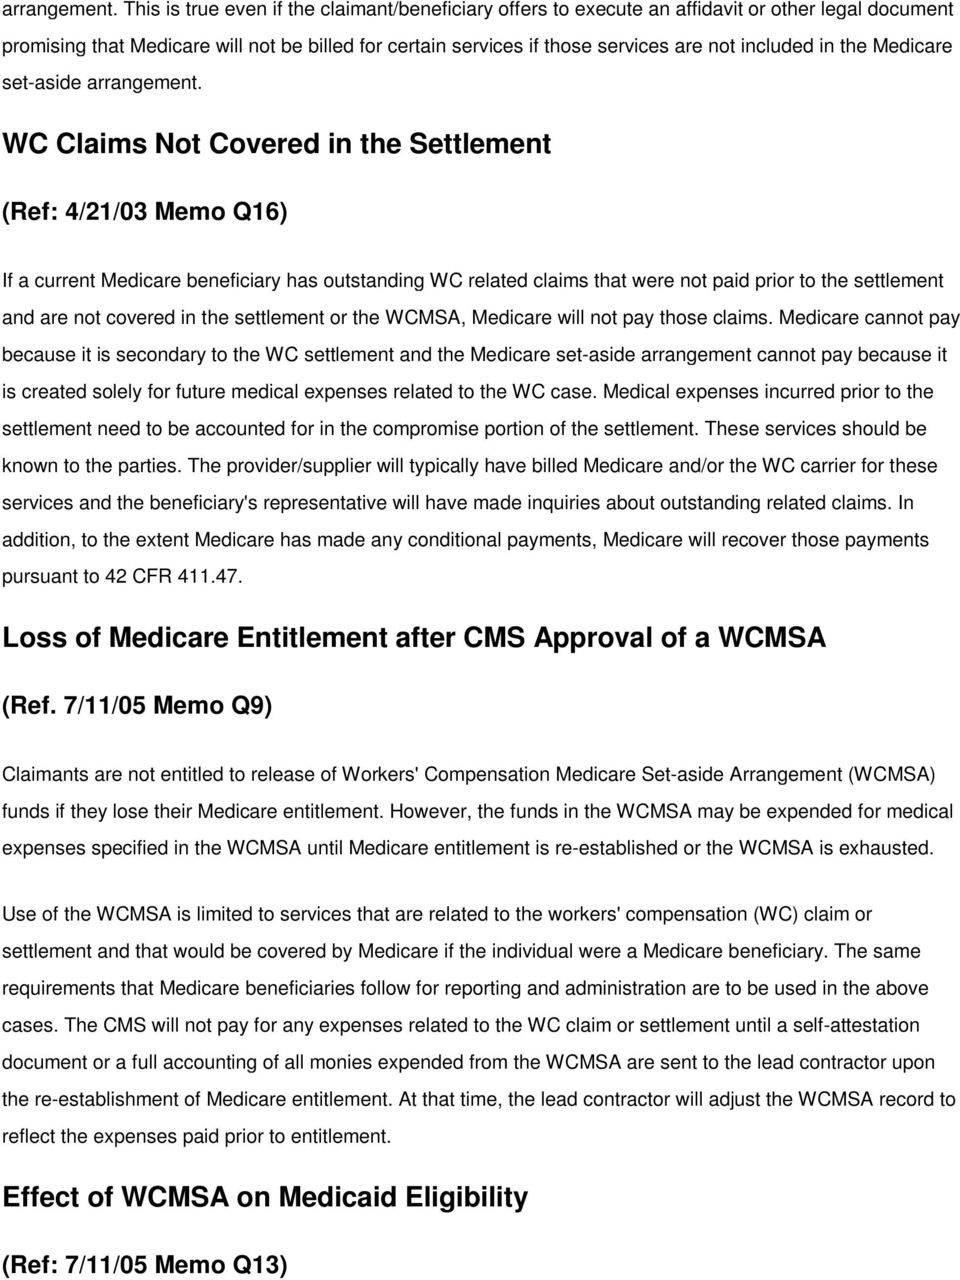 in the Medicare set-aside  WC Claims Not Covered in the Settlement (Ref: 4/21/03 Memo Q16) If a current Medicare beneficiary has outstanding WC related claims that were not paid prior to the